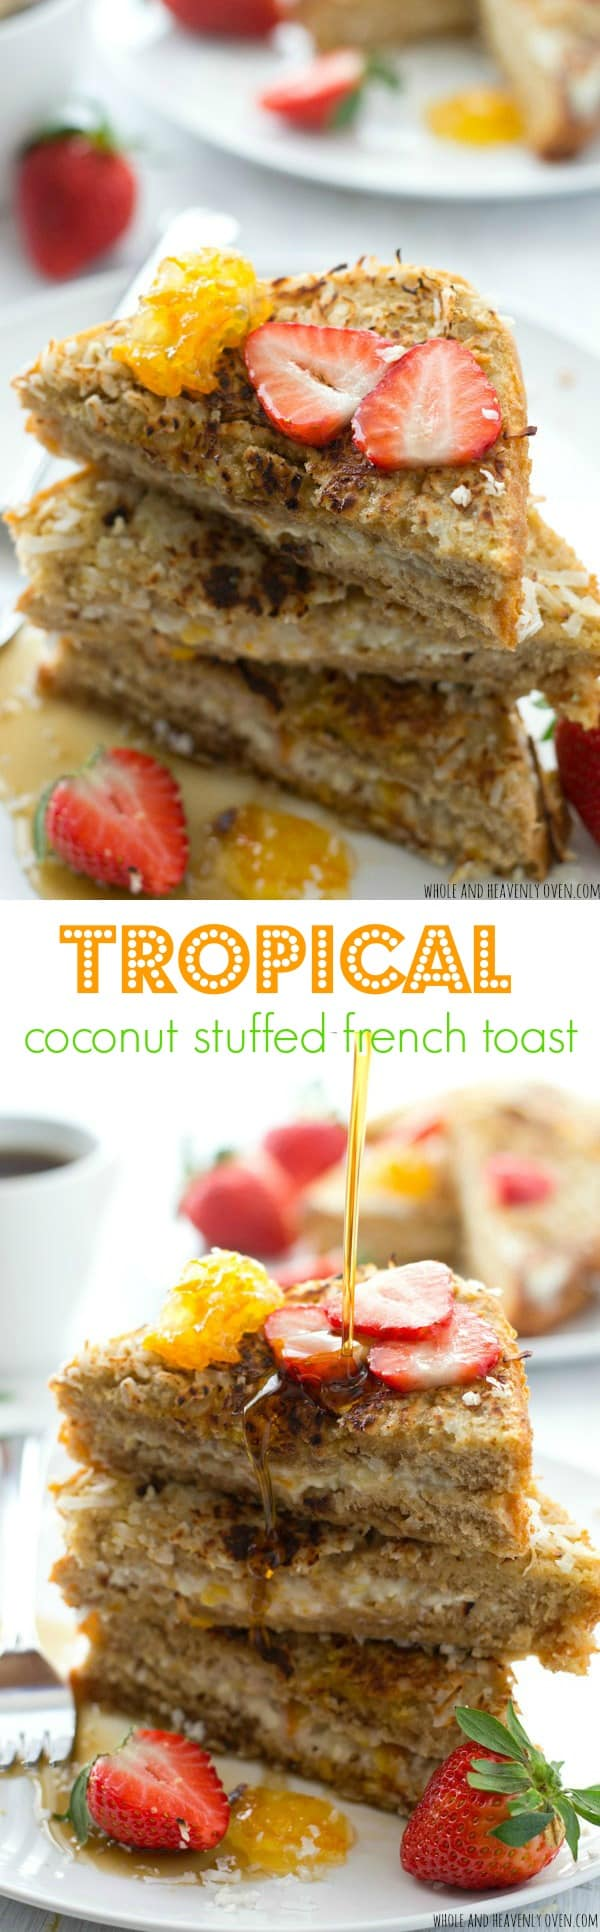 Stuffed with an orange-flavored cream cheese filling and rolled in toasty coconut, this french toast will make you feel like you took a trip to the tropics! @WholeHeavenly